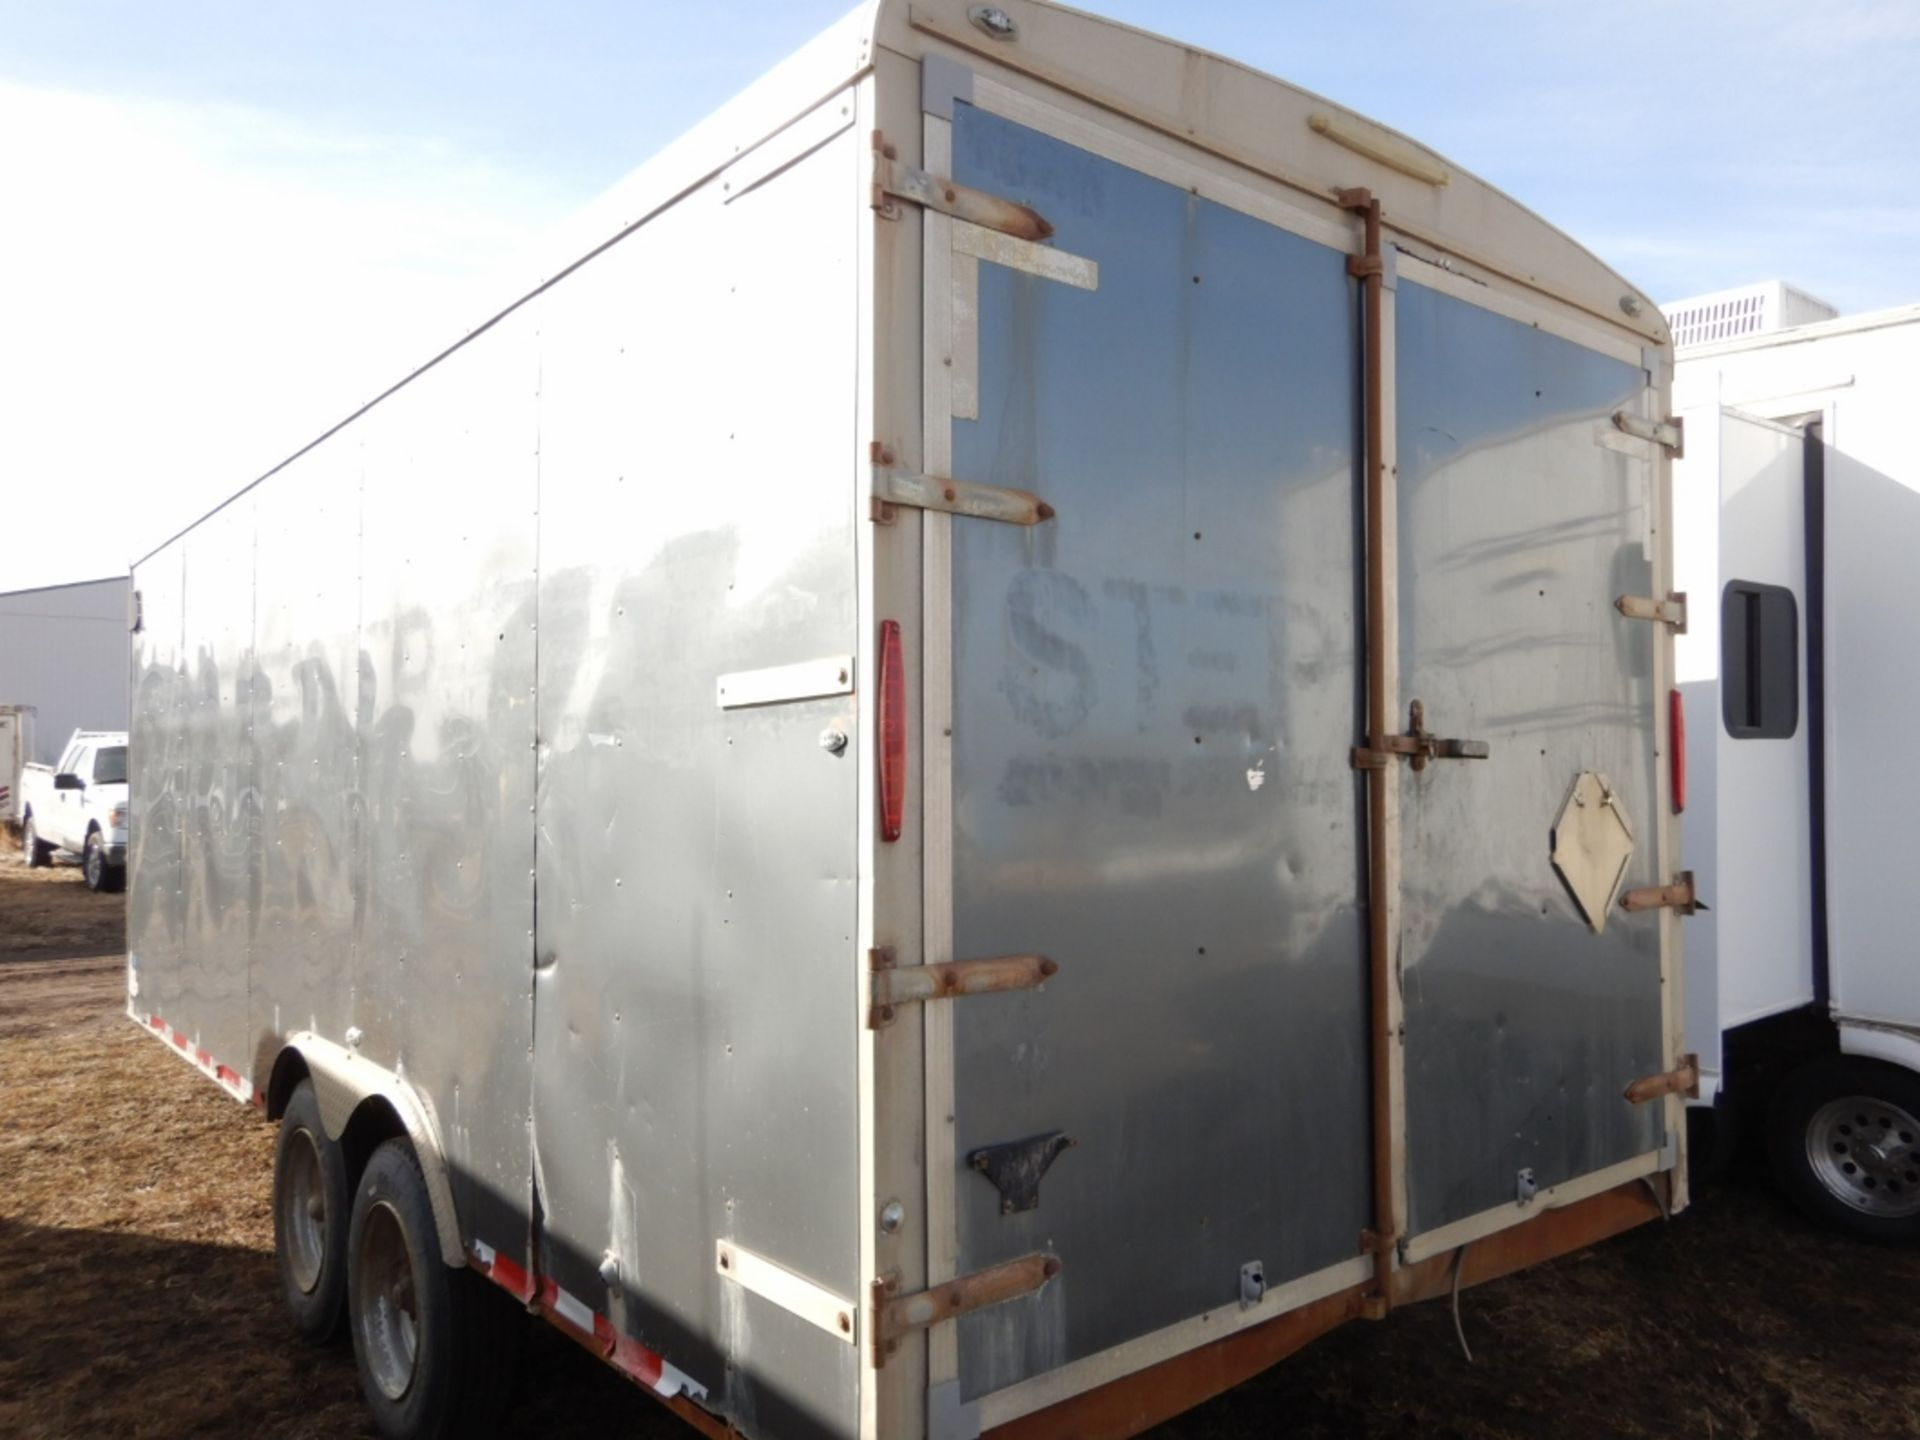 04/2012 TNT TRAILER - 20 FT T/A ENCLOSED TRAILER W/REAR BARN DOORS, S/N 5WBBE20226CW0058005 - Image 3 of 7